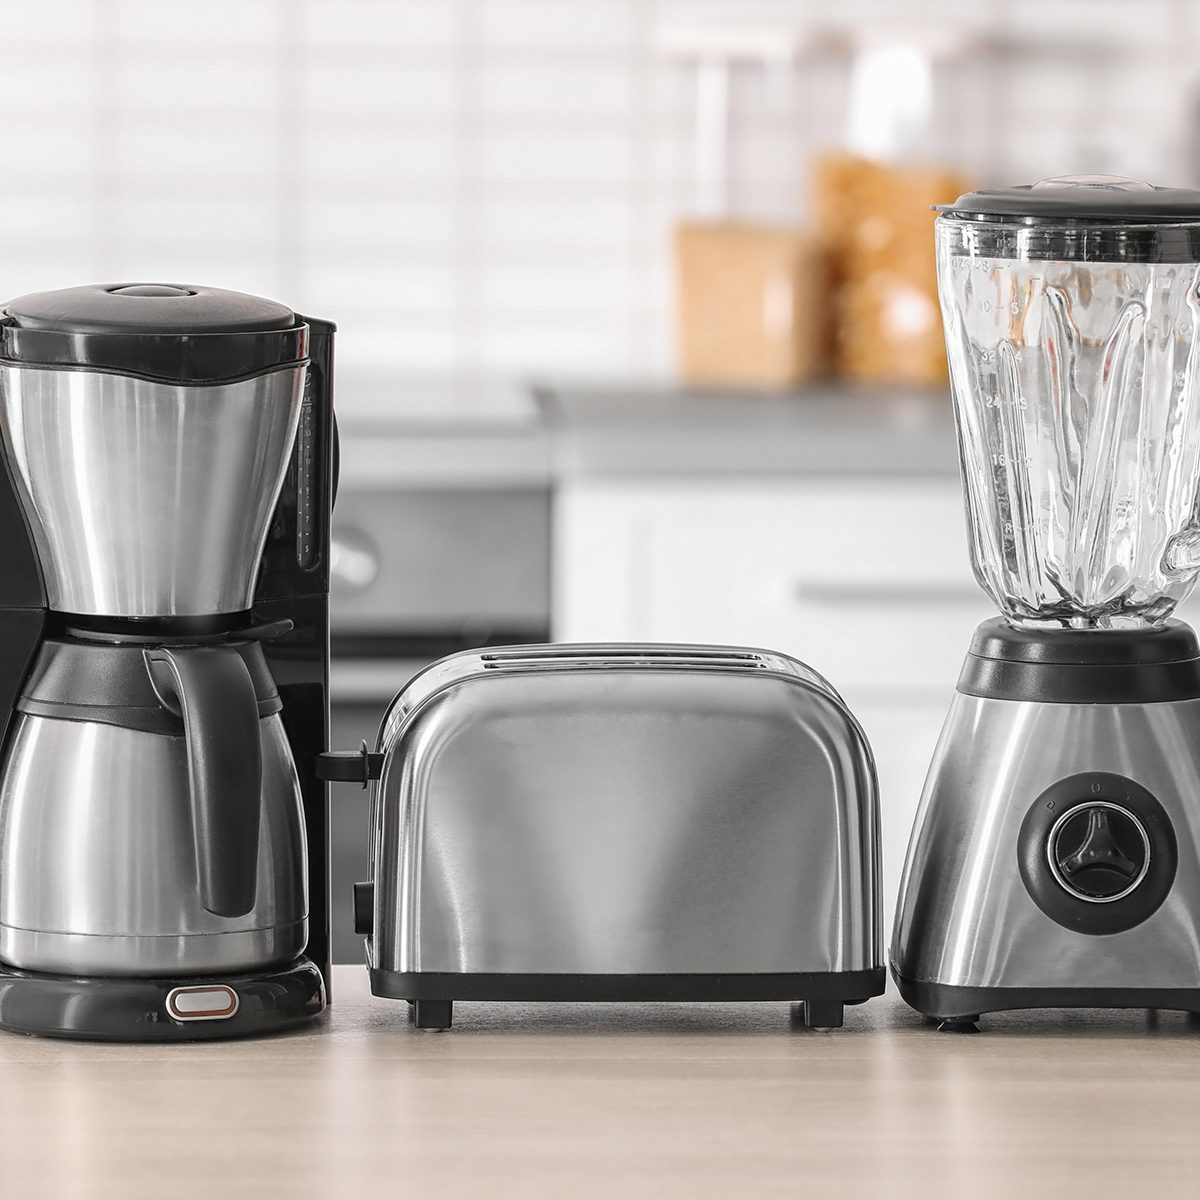 Appliances on the kitchen counter